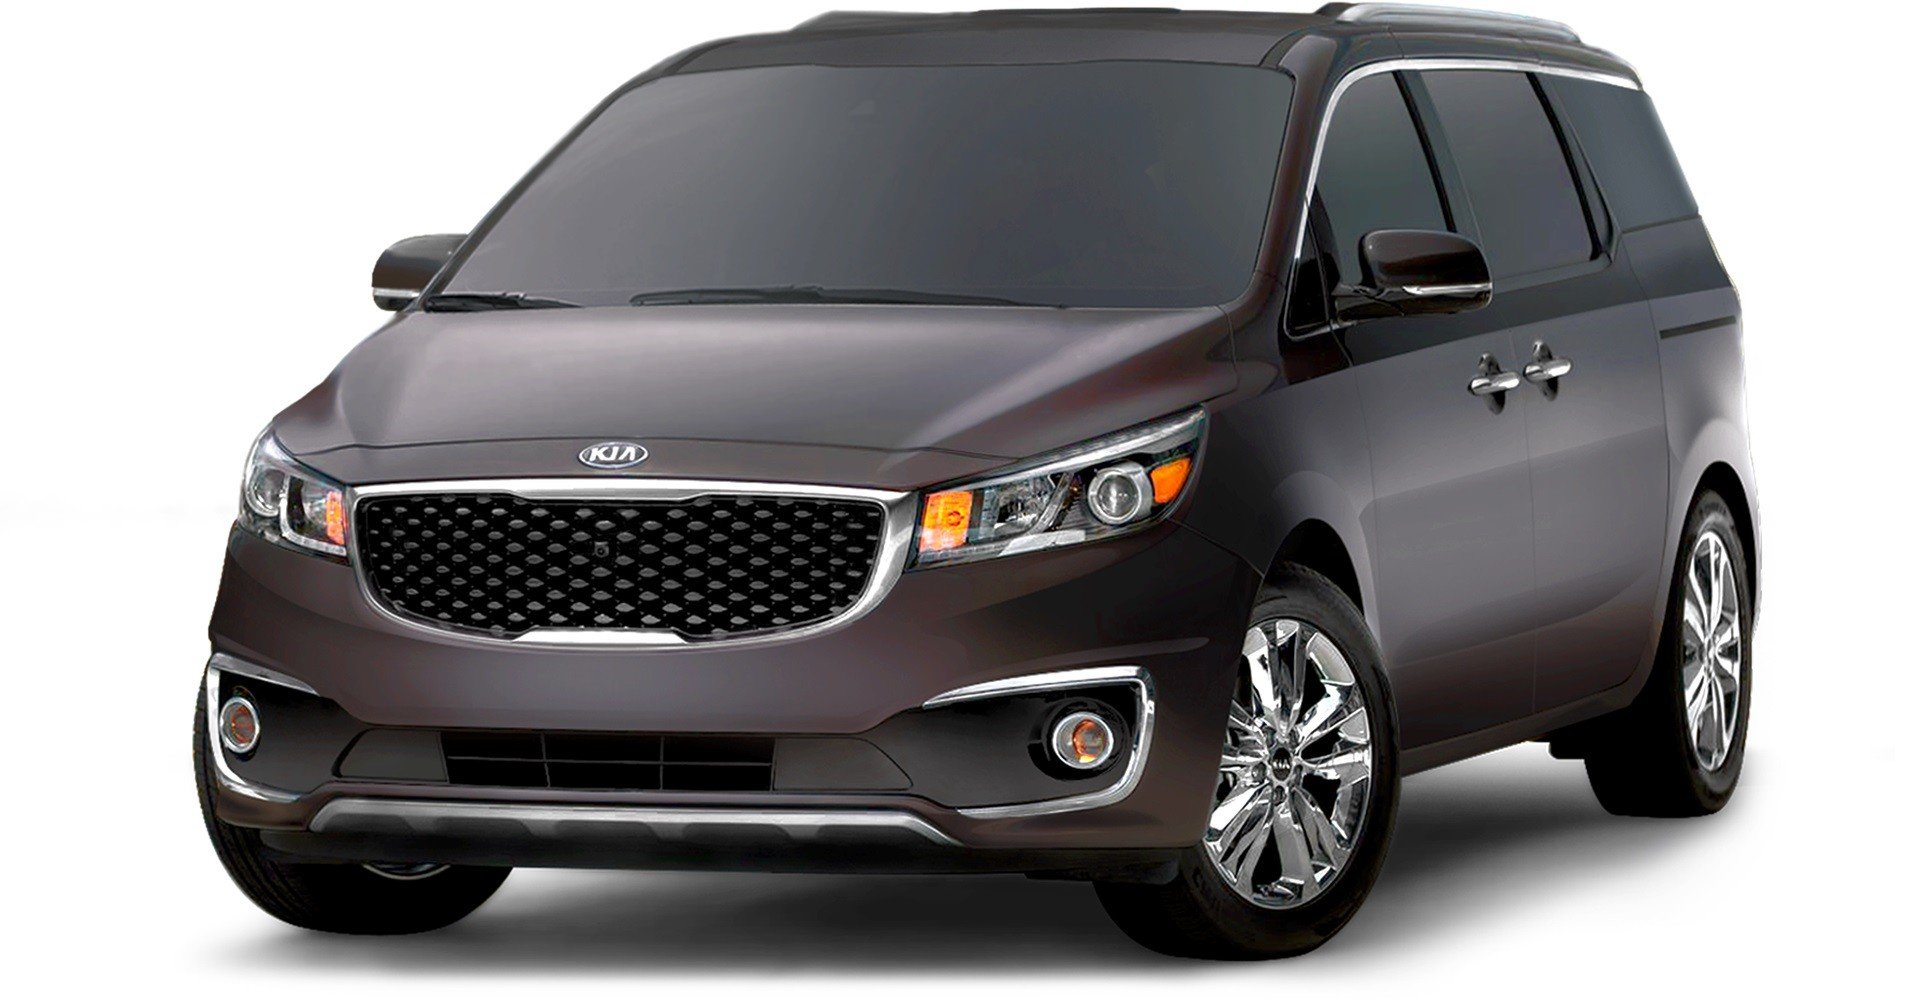 2015 Kia Sedona for Sale in Kirkland at Lee Johnson Kia